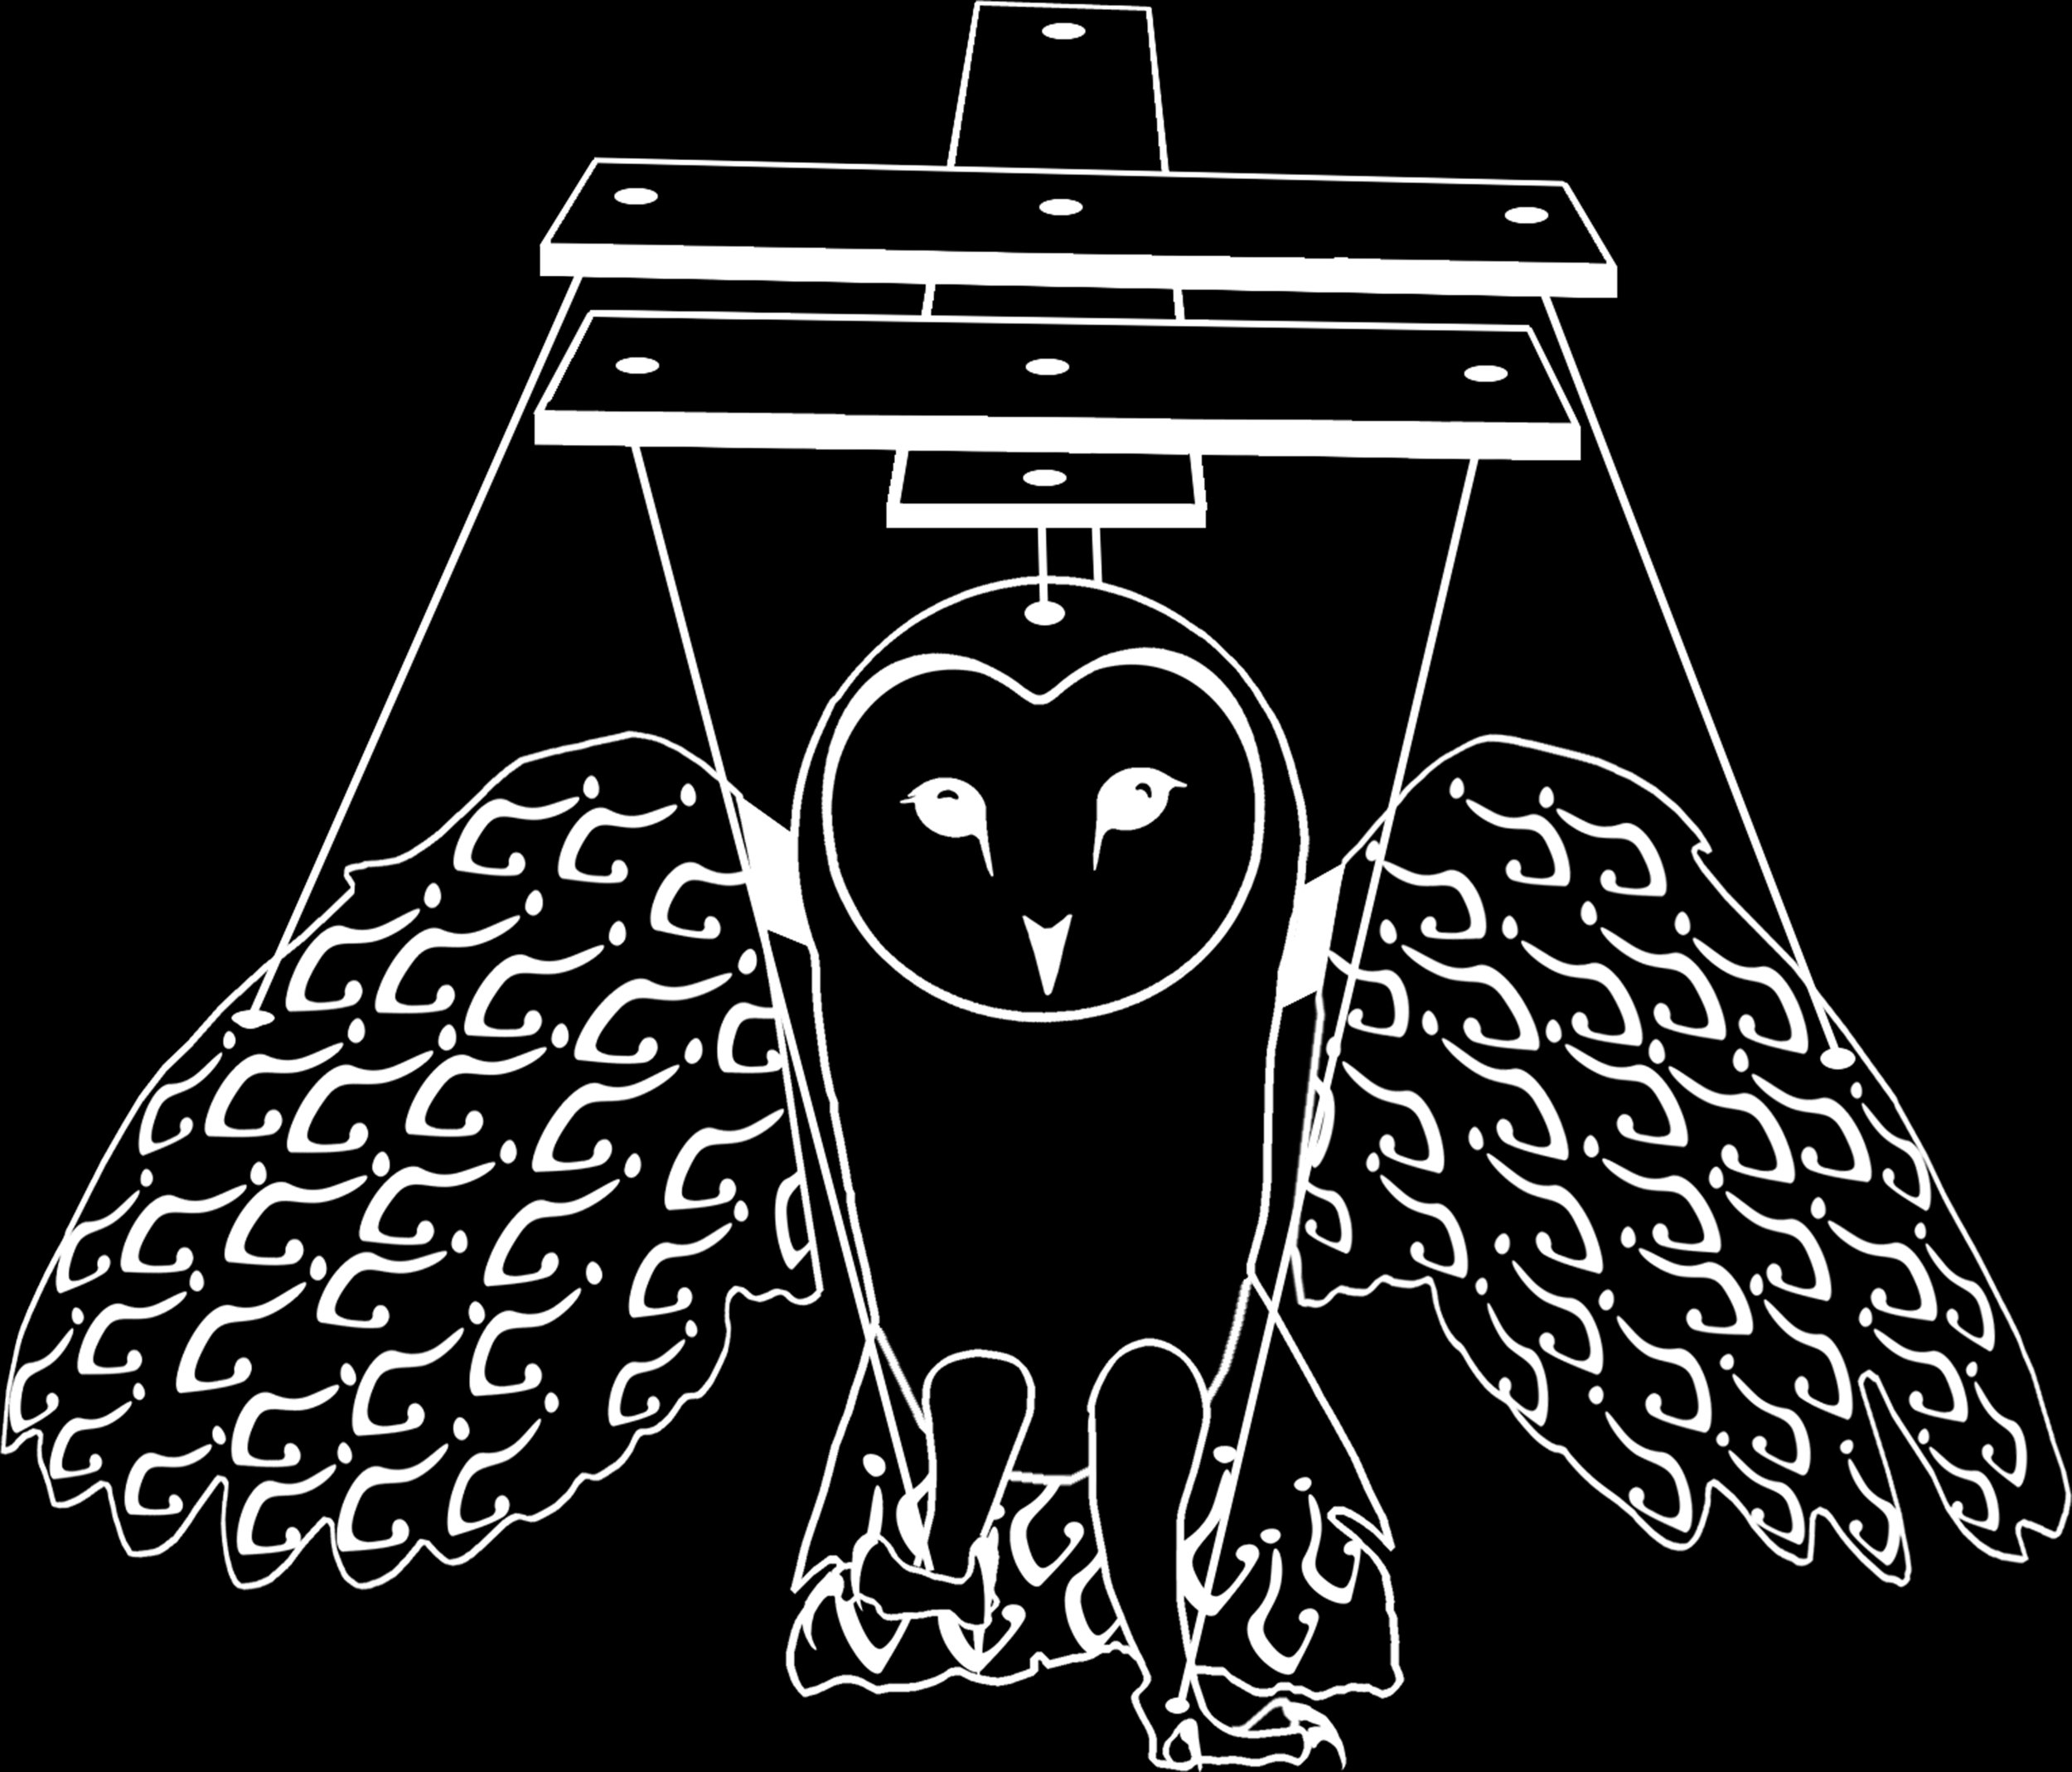 marionette owl white with black background.jpg